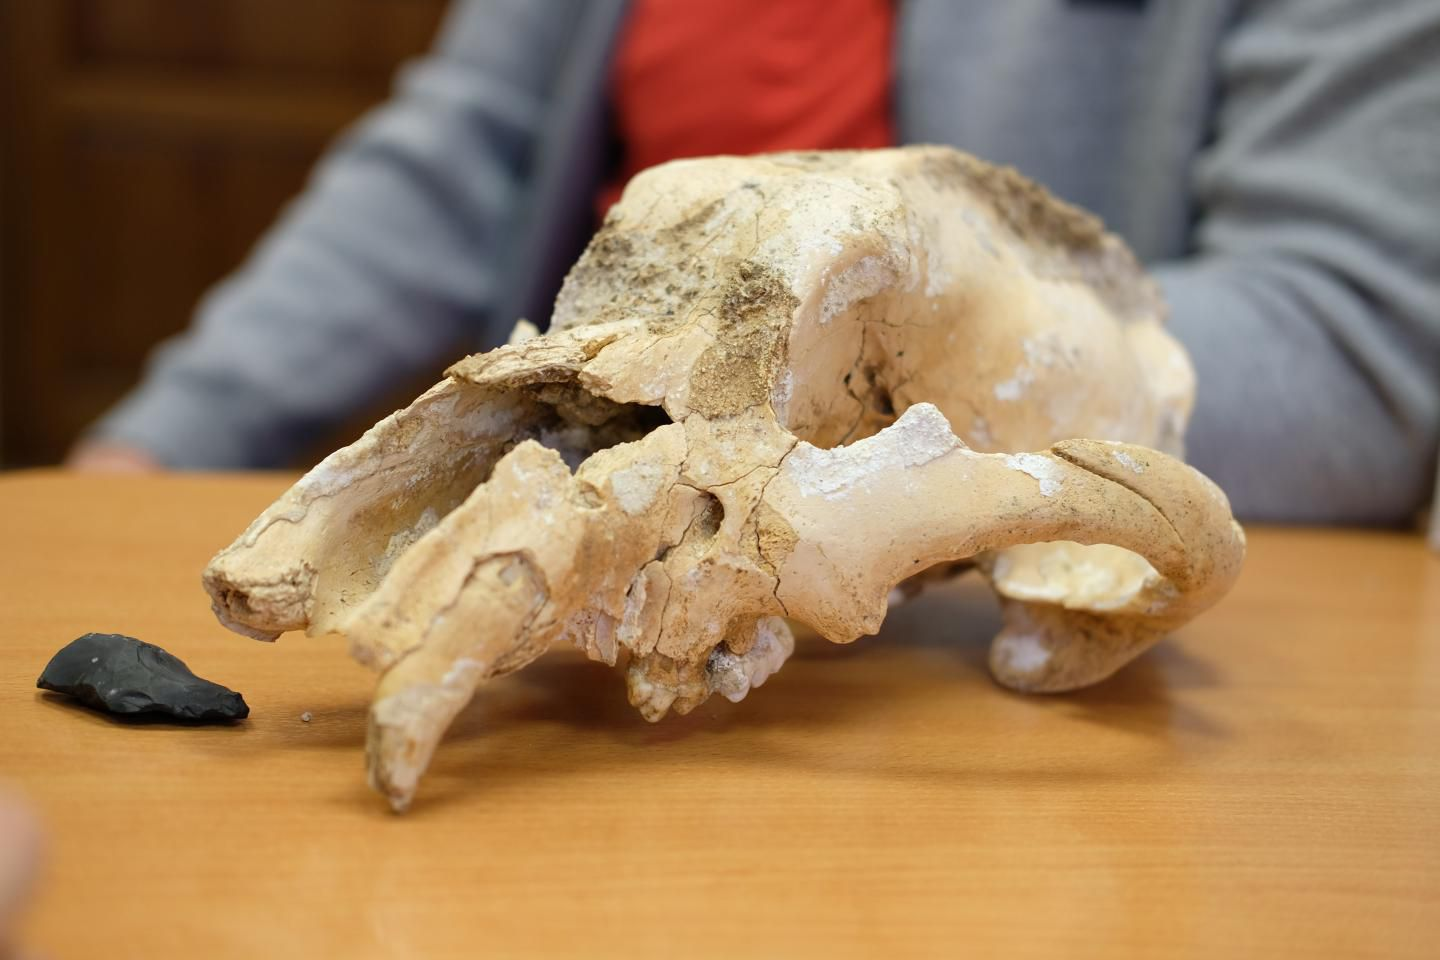 This 35,000-Year-Old Skull Could Be the First Evidence of Humans Hunting Small Cave Bears